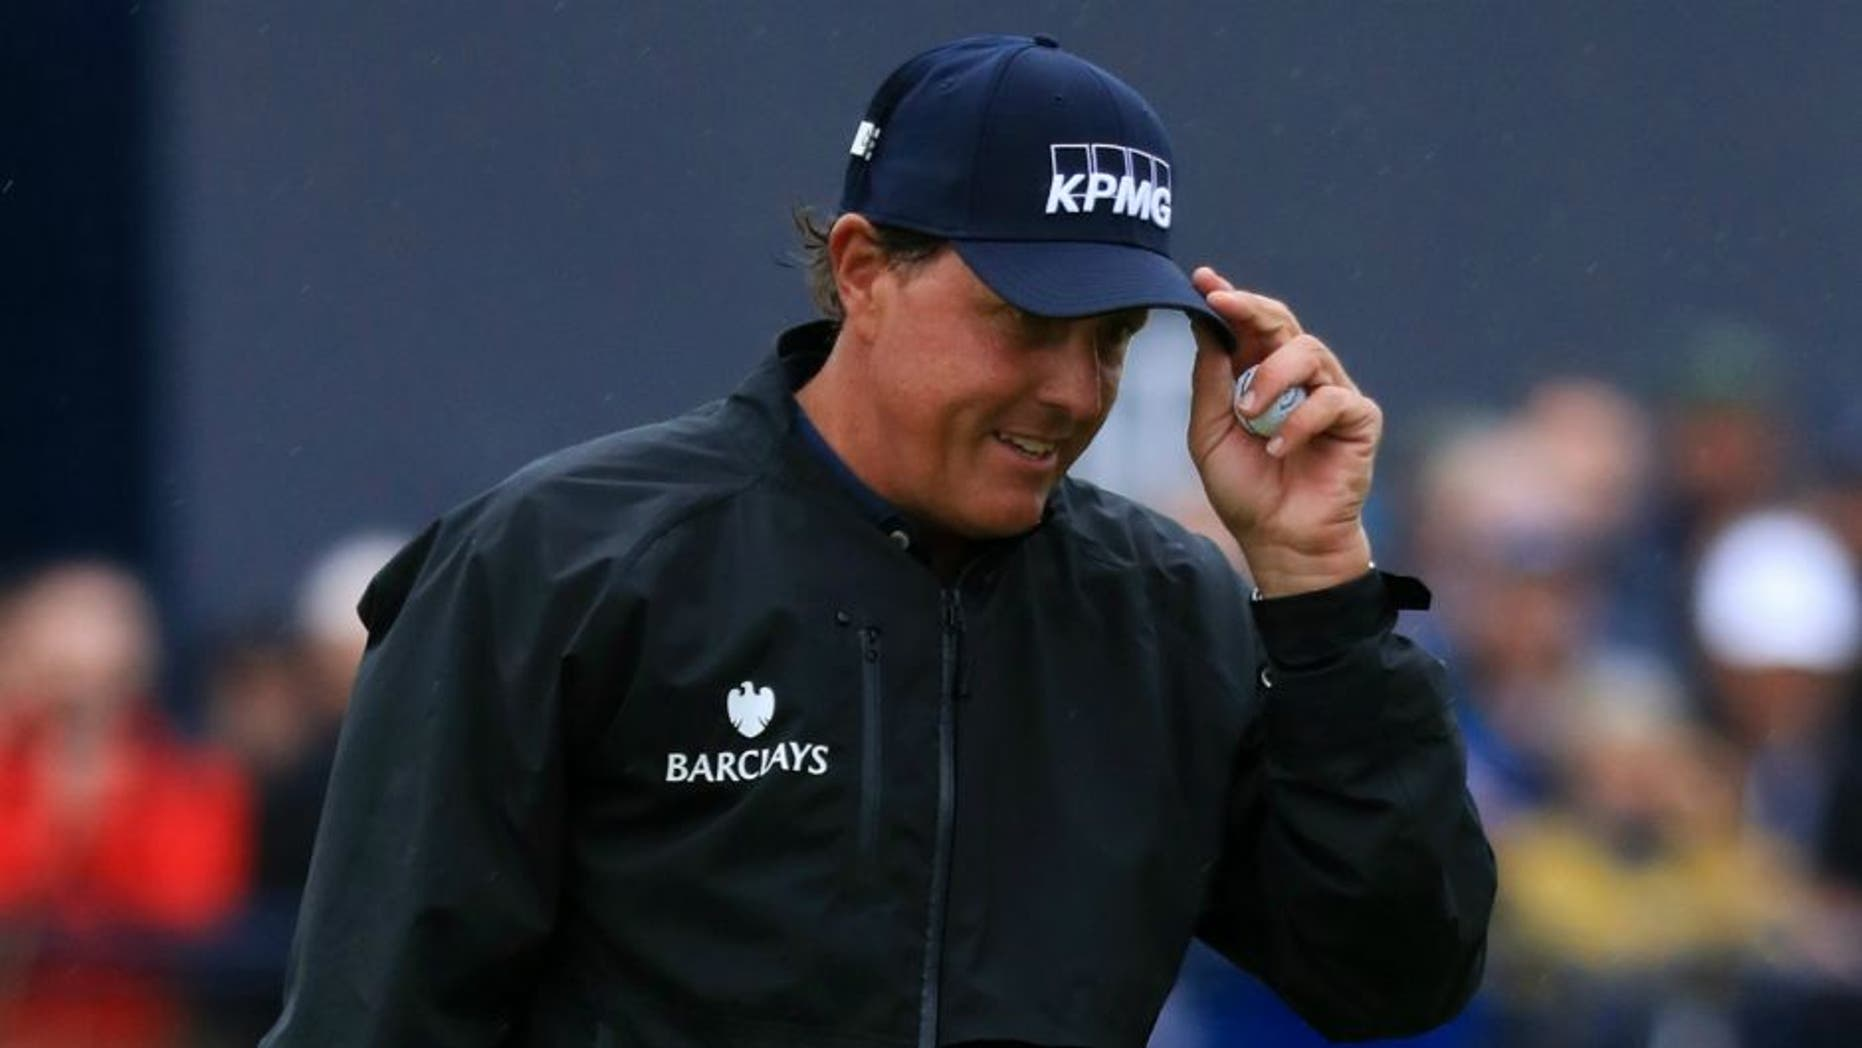 TROON, SCOTLAND - JULY 15: Phil Mickelson of the United States acknowledges the crowd after putting on the 18th green during the second round on day two of the 145th Open Championship at Royal Troon on July 15, 2016 in Troon, Scotland. (Photo by Matthew Lewis/Getty Images)